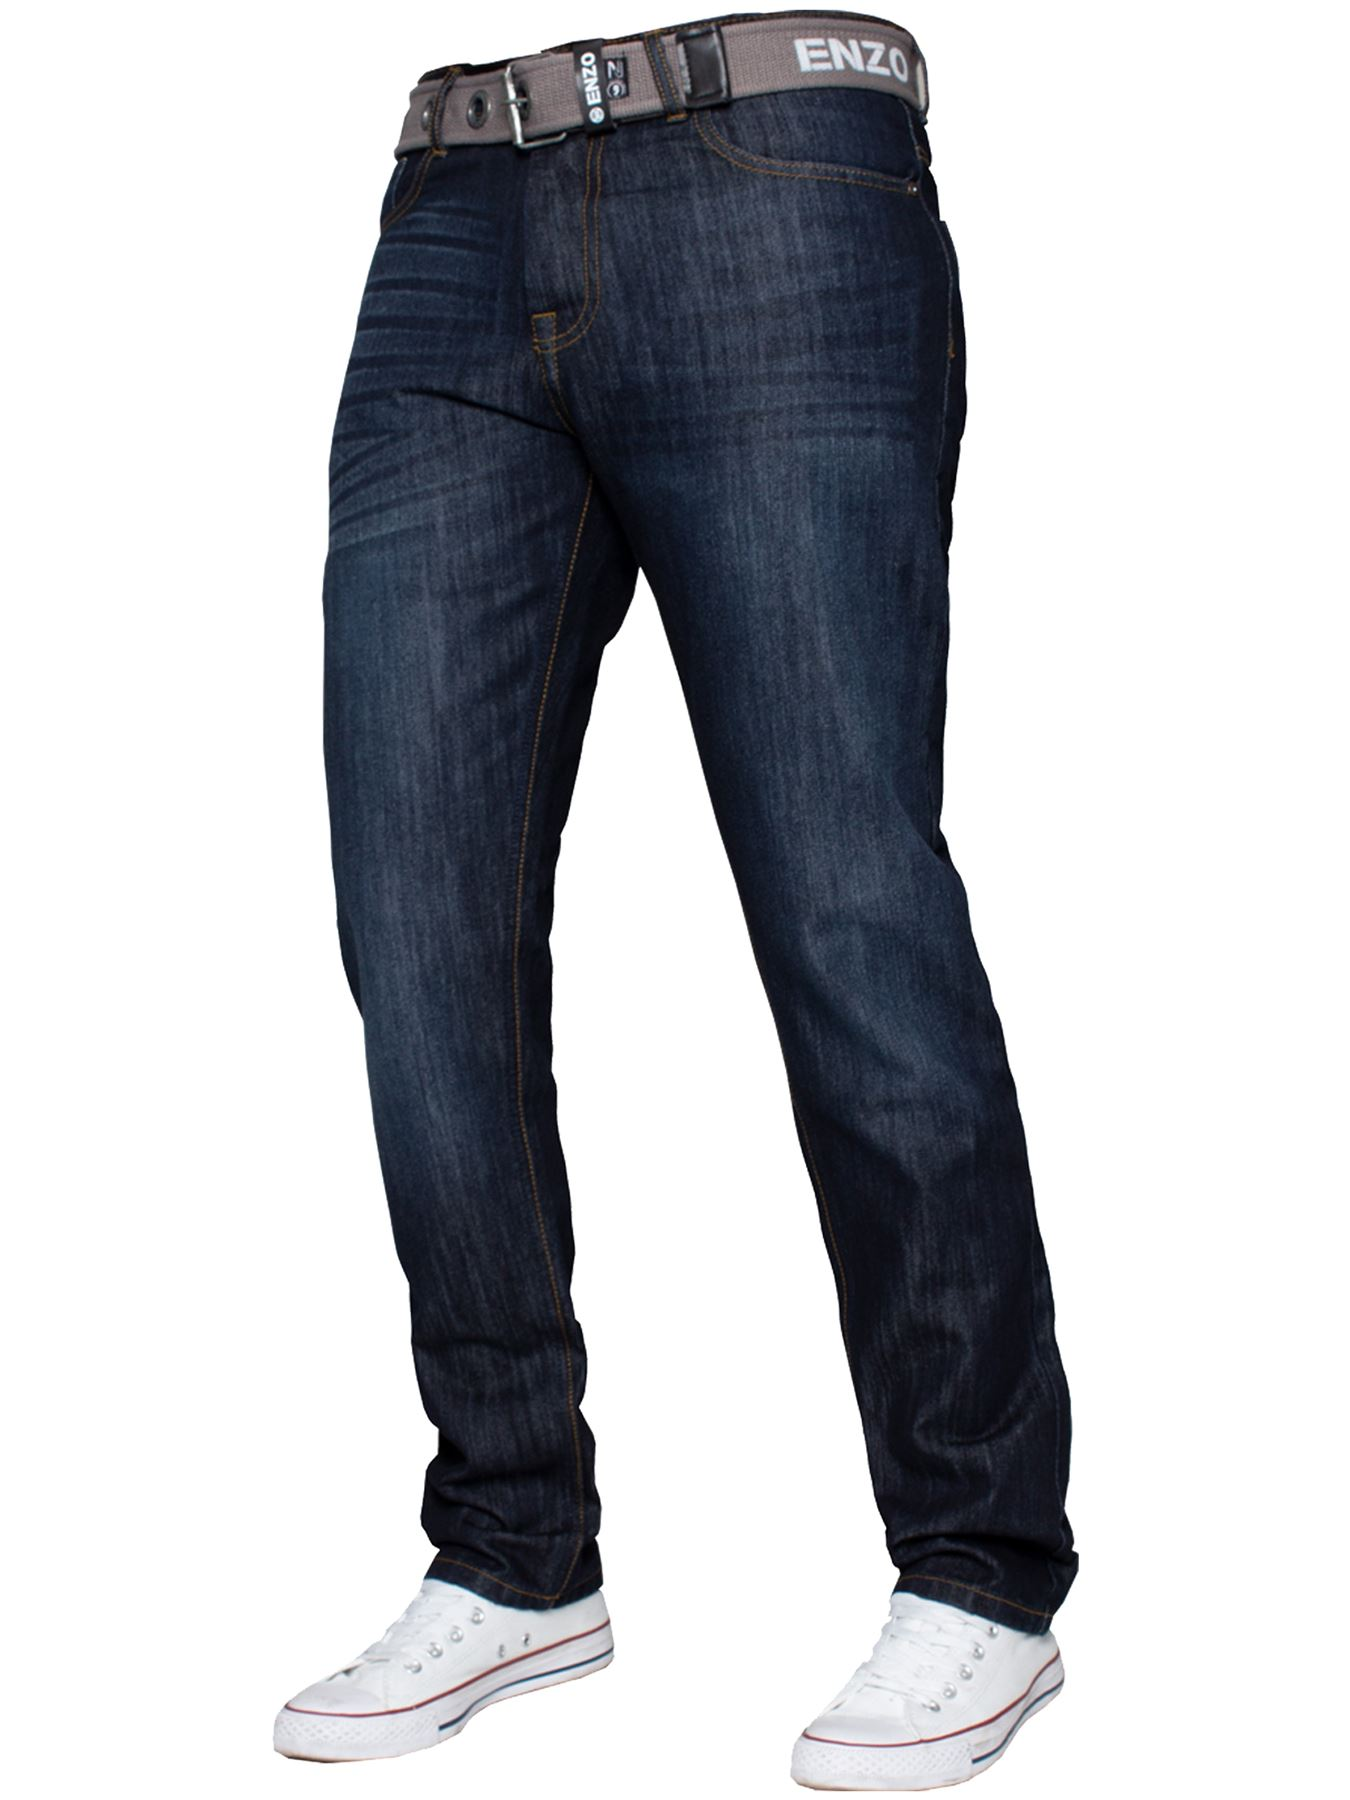 Enzo-Mens-Straight-Leg-Jeans-Regular-Fit-Denim-Pants-Big-Tall-All-Waists-Sizes thumbnail 16